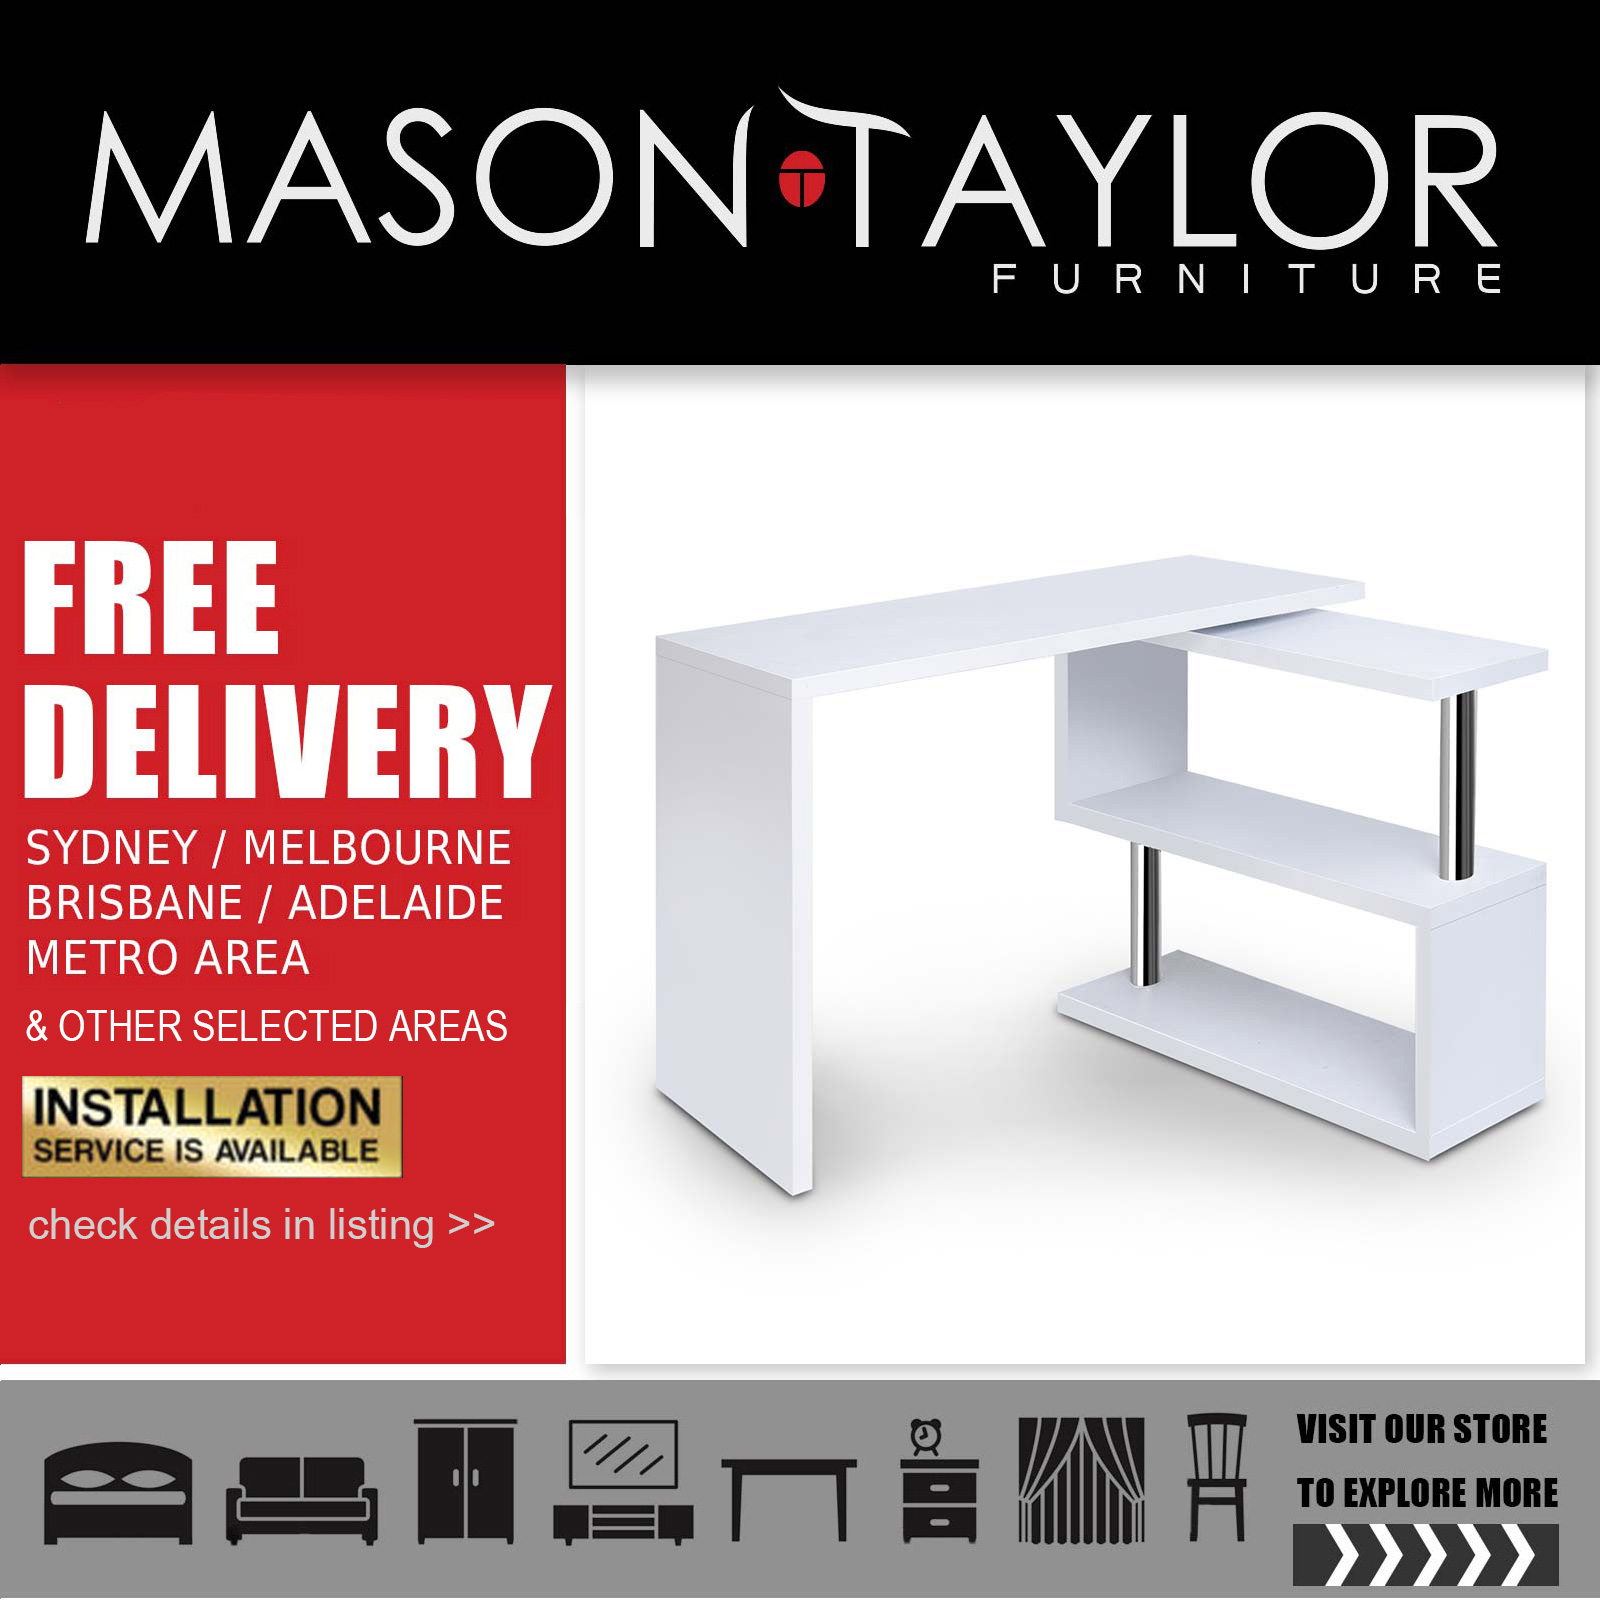 Corner Desks Brisbane Details About Mason Taylor Artiss Rotary Corner Desk With Bookshelf White Au